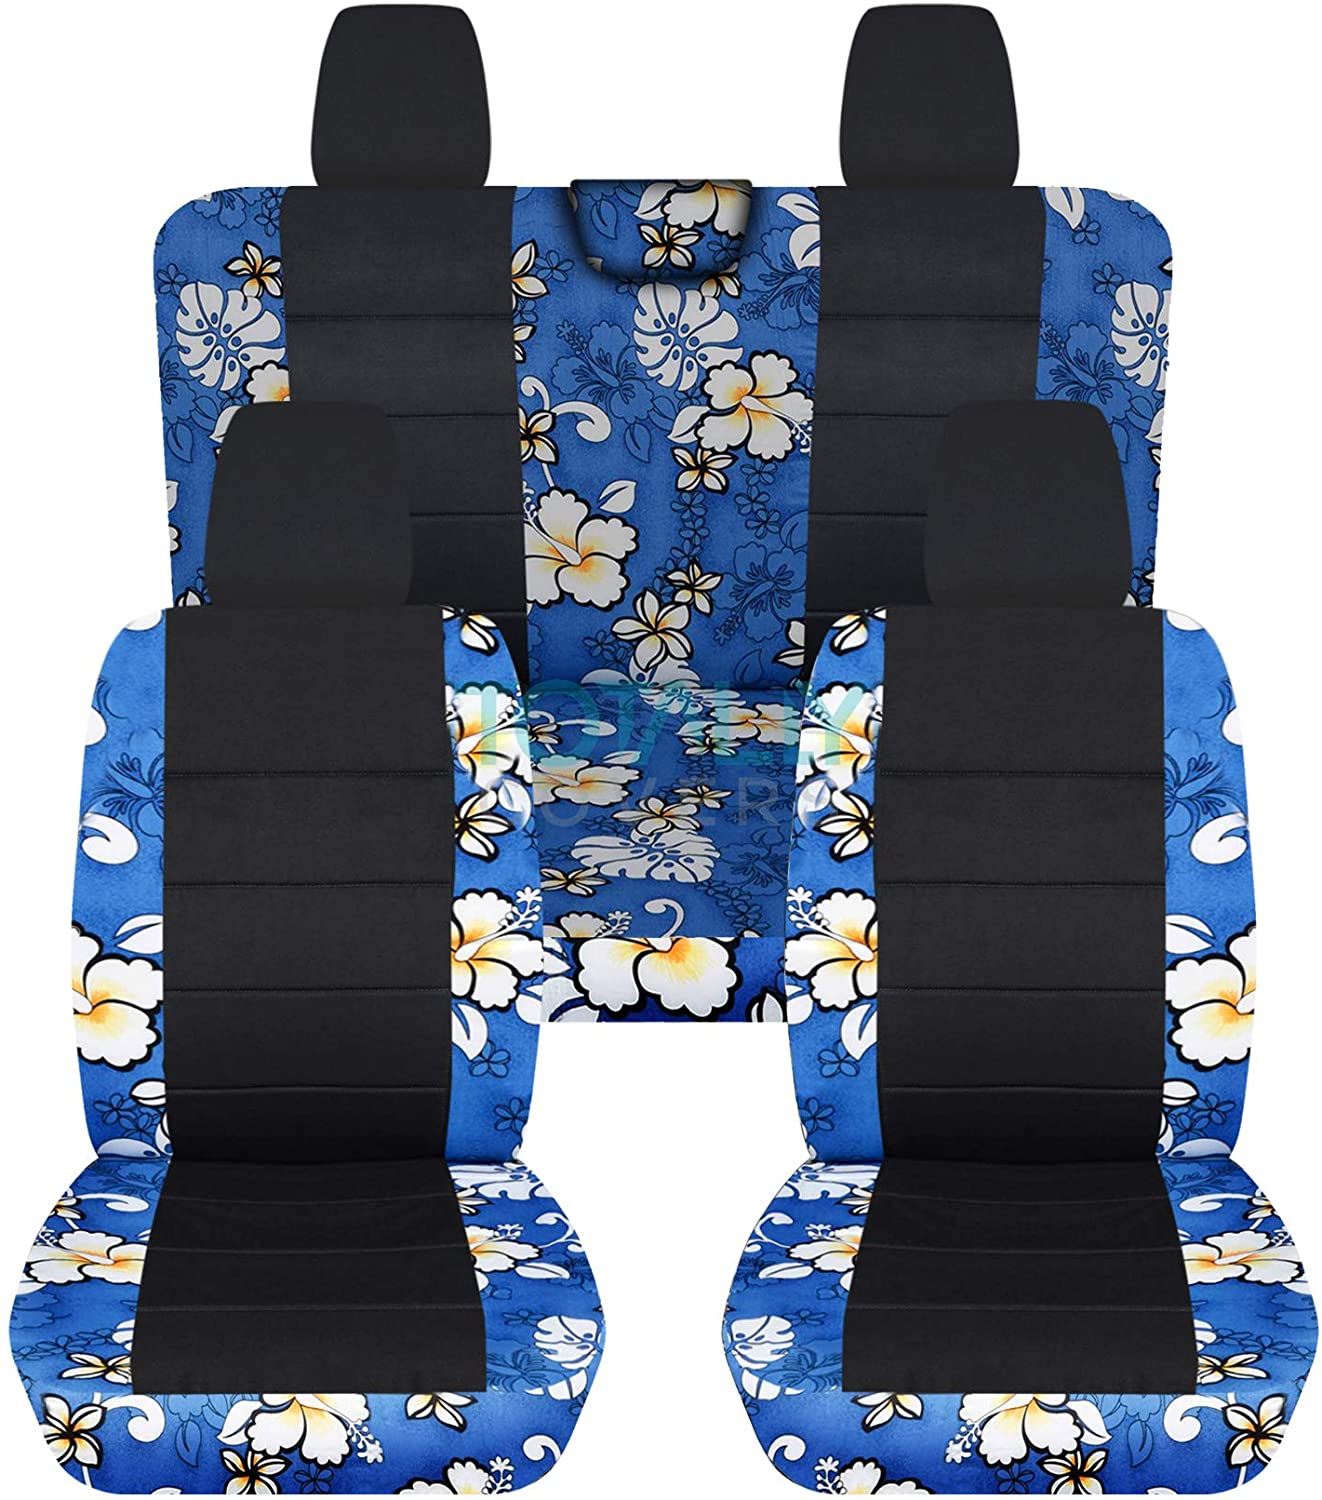 Totally Covers Compatible with 2018-2020 Jeep Wrangler JL Hawaiian & Black Seat Covers: Blue - Full Set: Front & Rear (4 Prints) 2-Door/4-Door Solid/Split Bench Back w/wo Armrest/Headrest